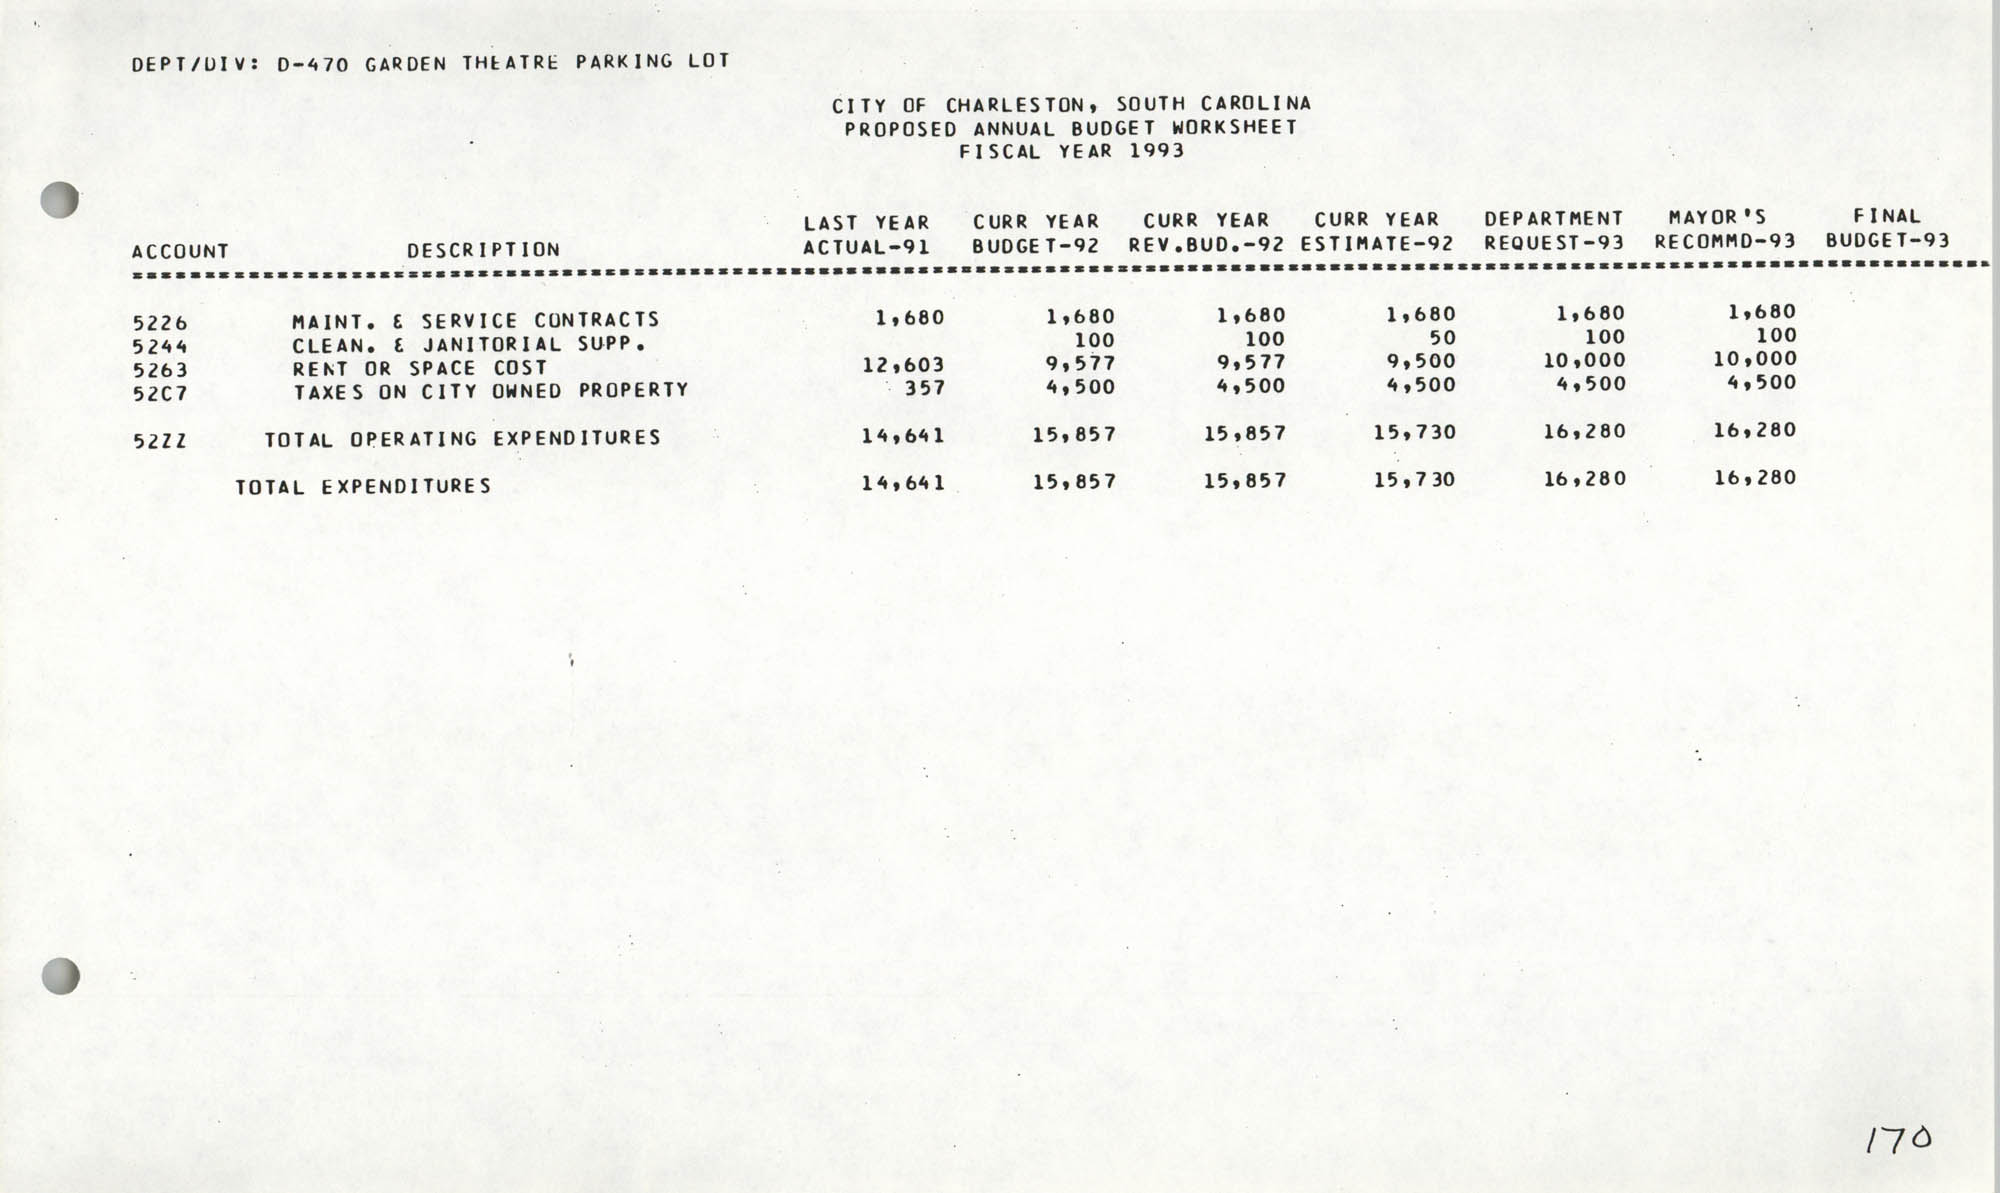 The City Council of Charleston, South Carolina, 1993 Budget, Page 170